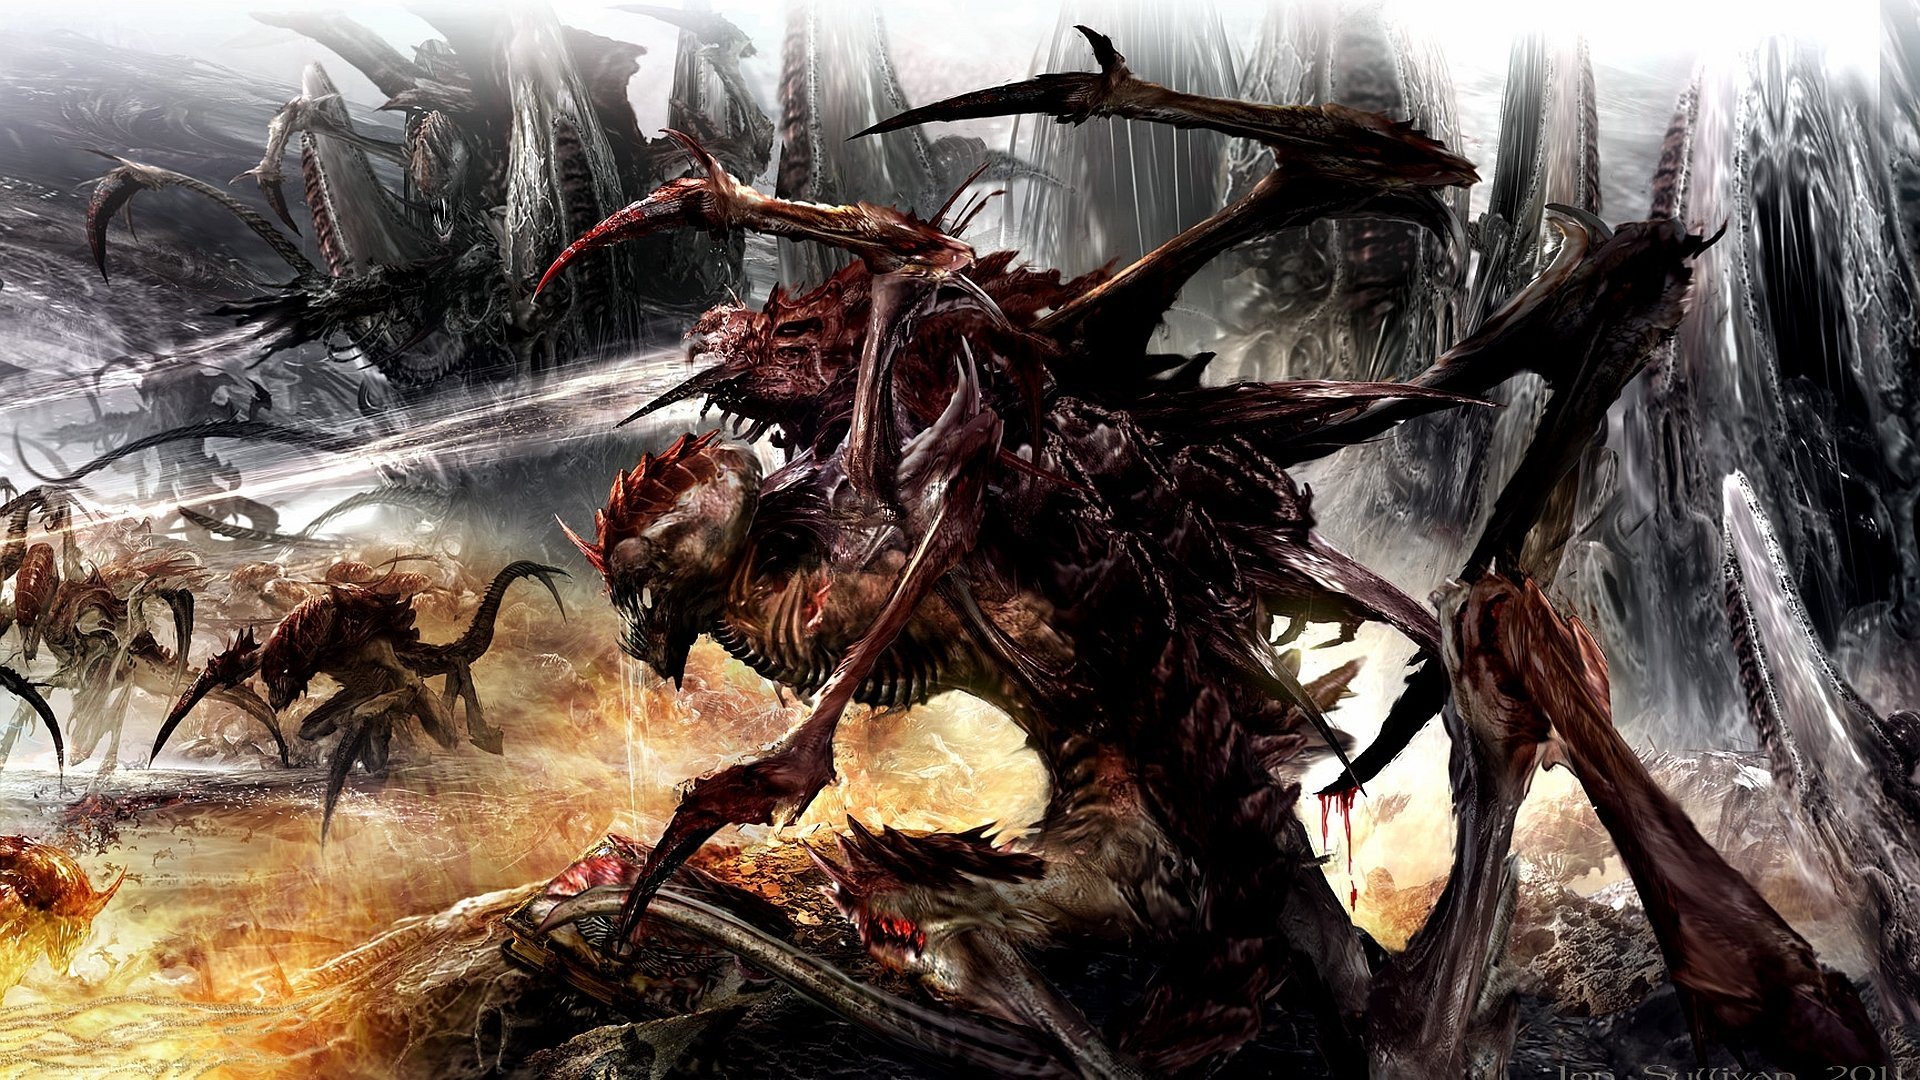 Hd Game Wallpapers For Iphone 6 Tyranids Full Hd Wallpaper And Background Image